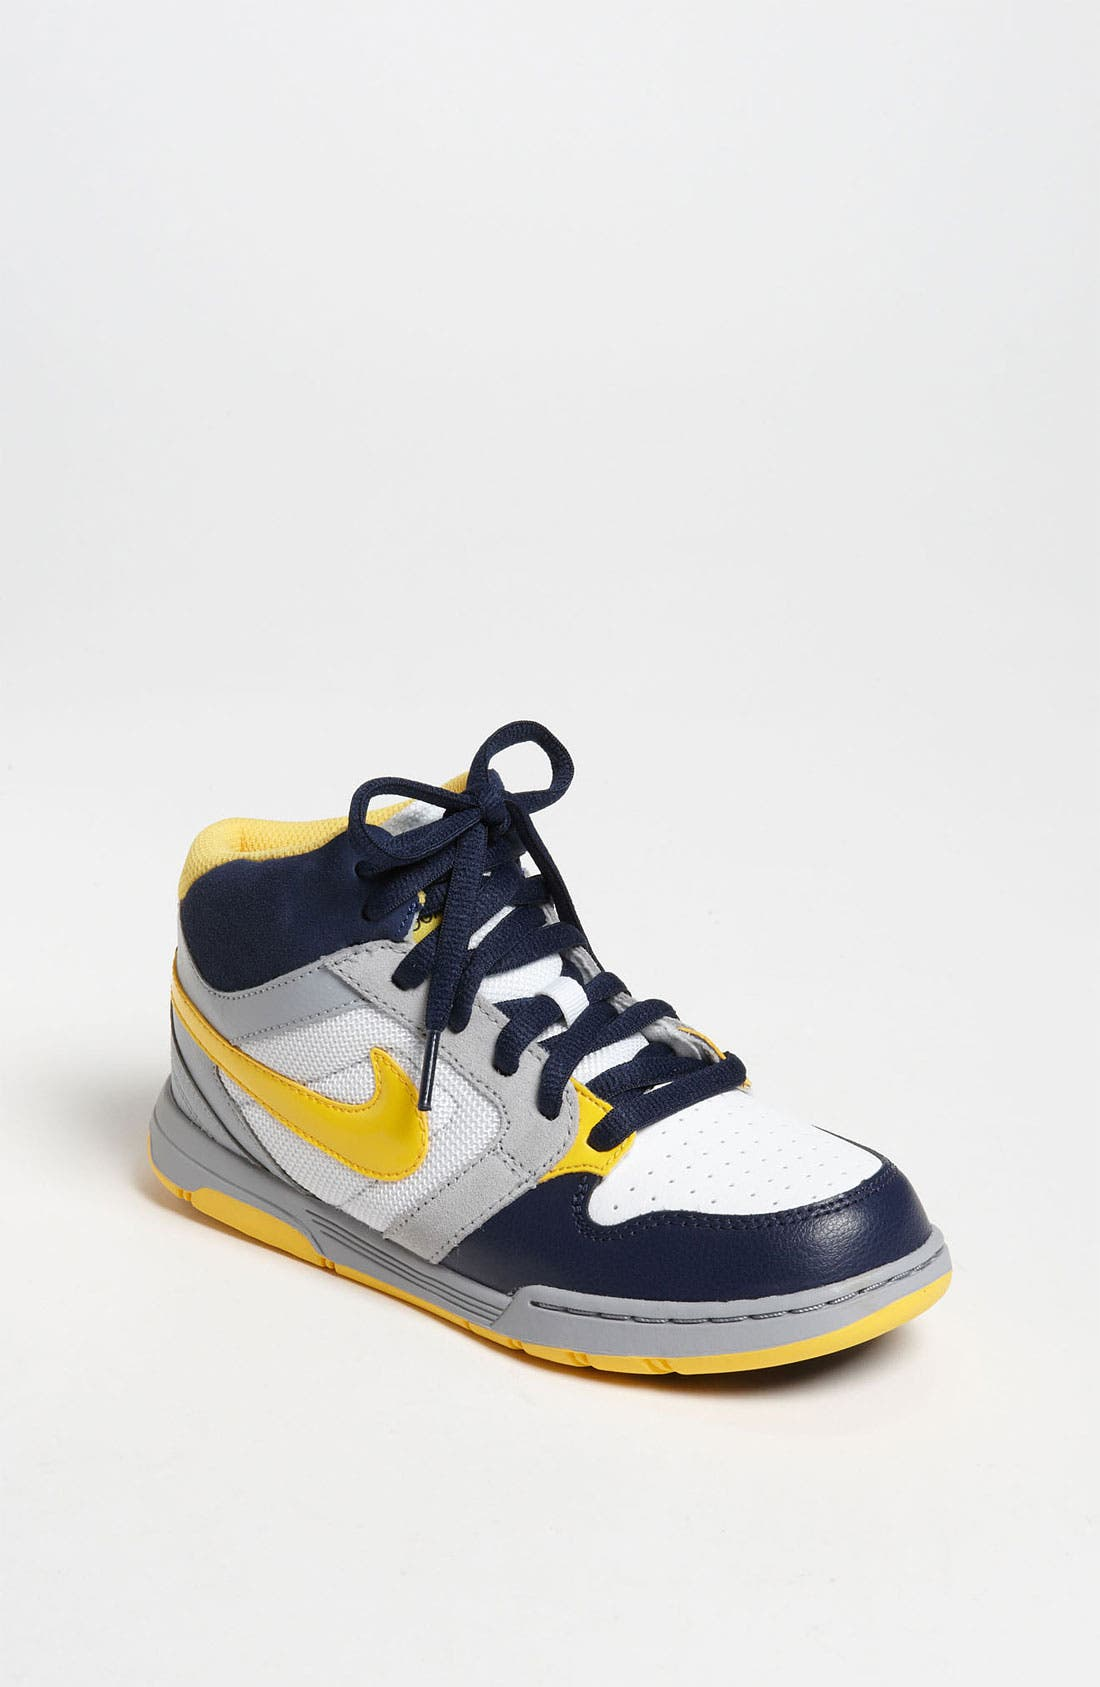 Alternate Image 1 Selected - Nike 'Mogan Mid 3' Sneaker (Toddler, Little Kid & Big Kid)